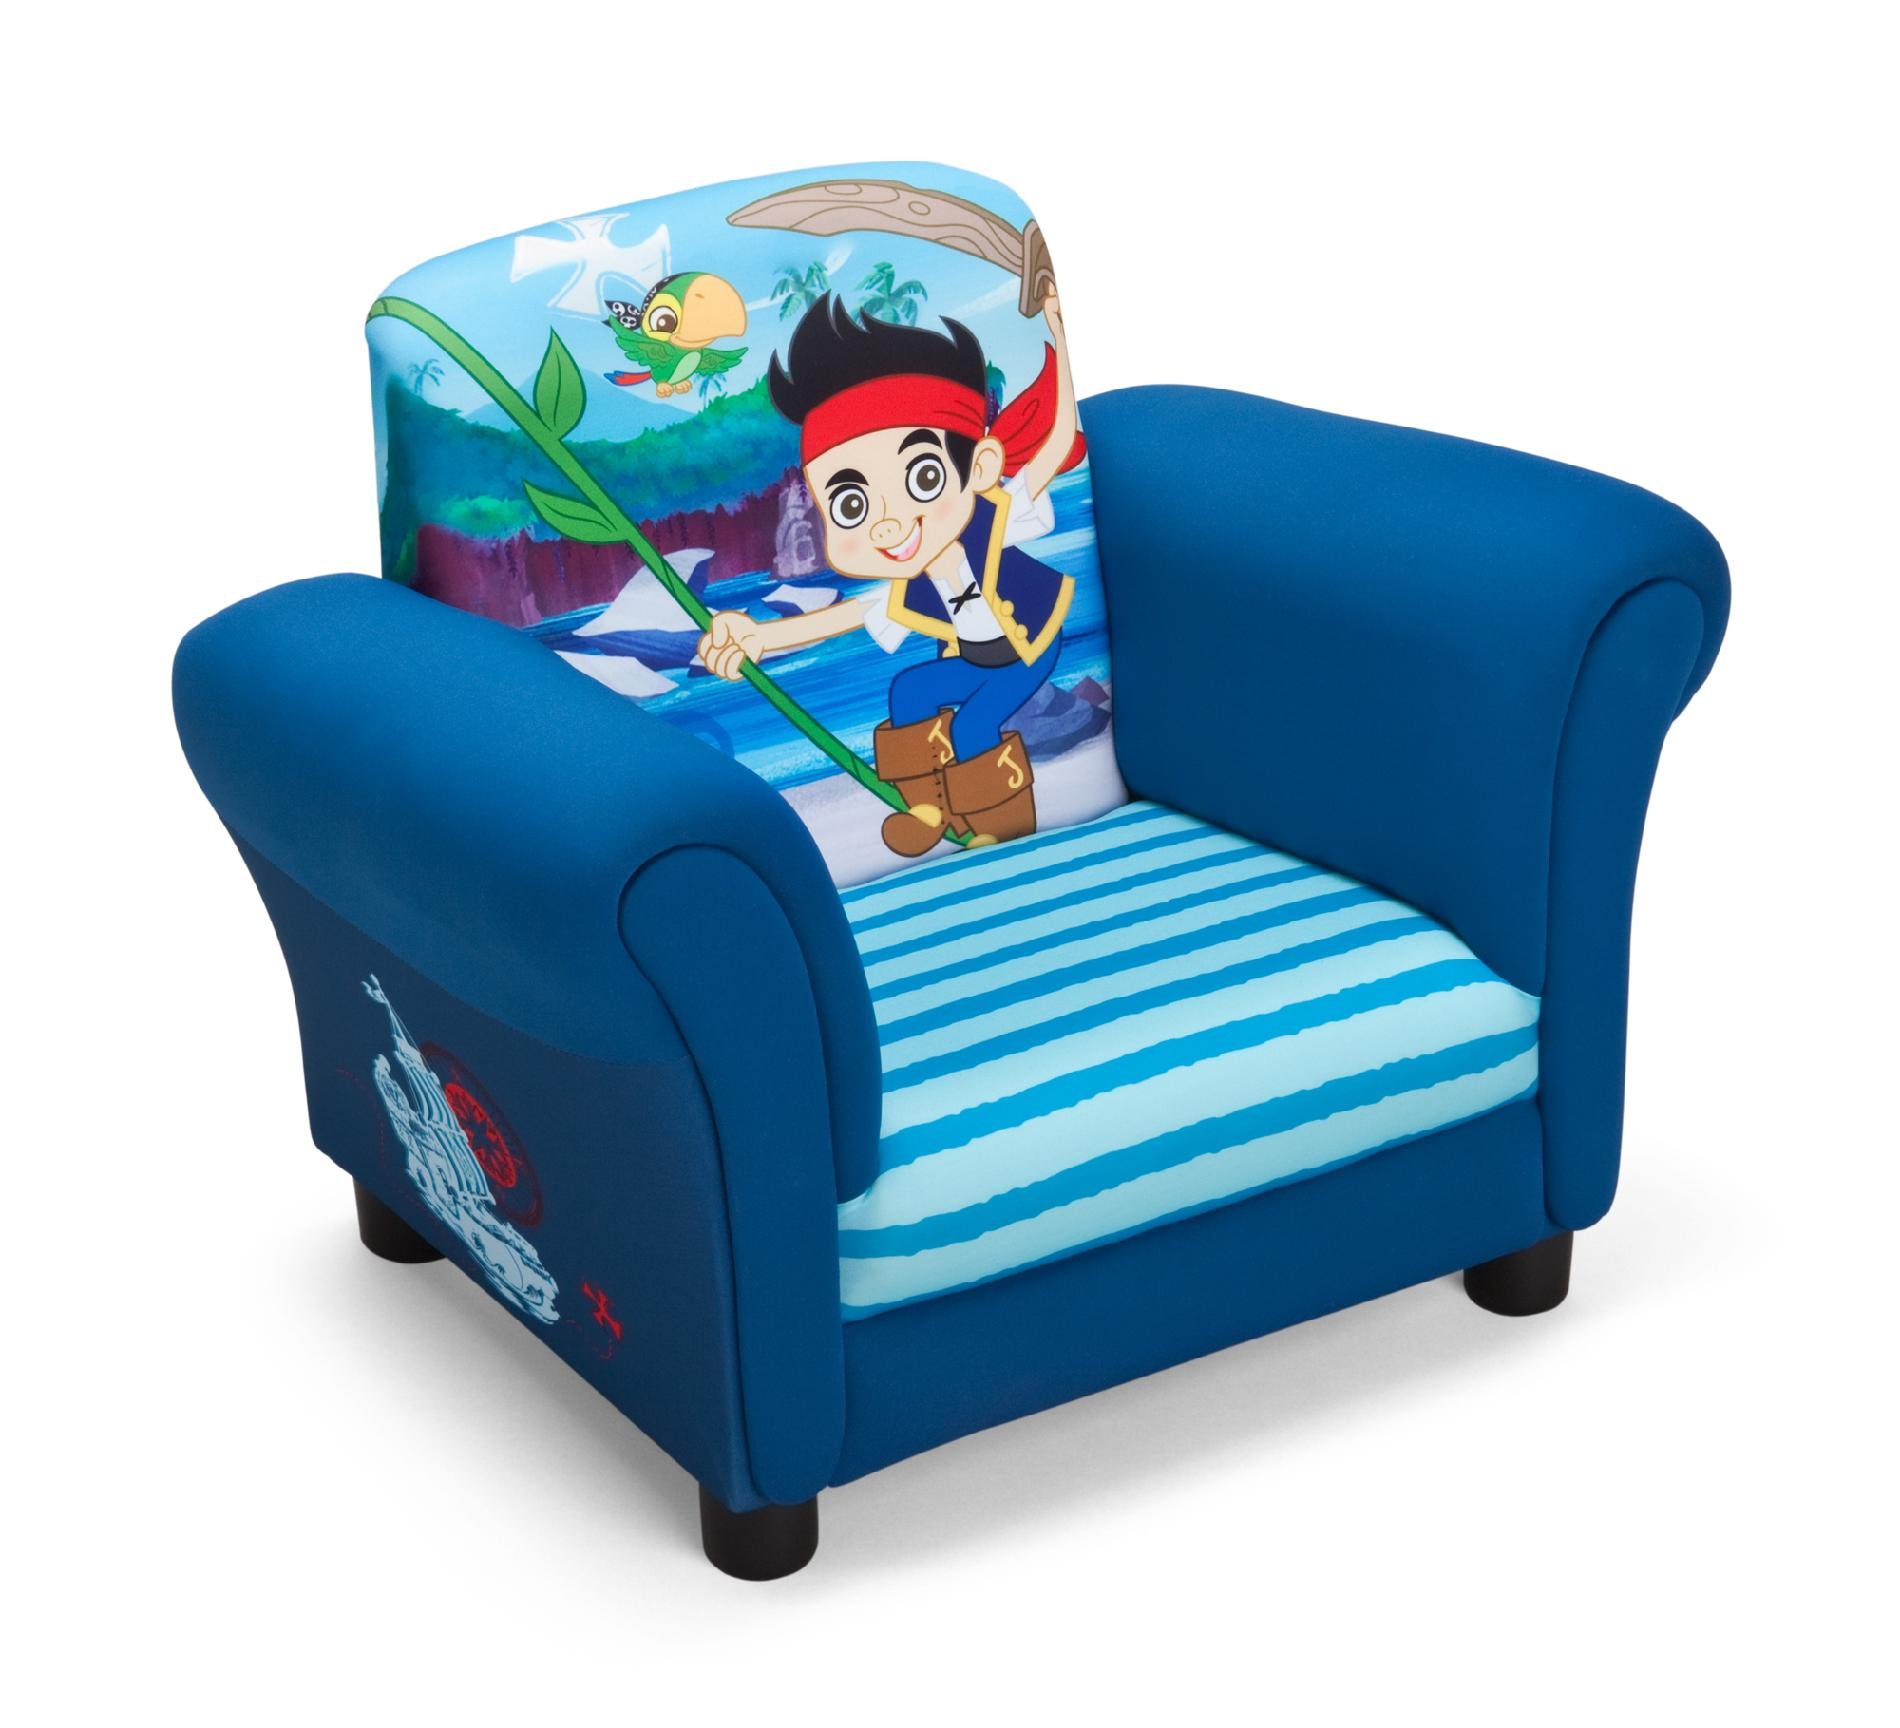 childrens upholstered chair swivel with footrest jake and the never land pirates decor totally kids